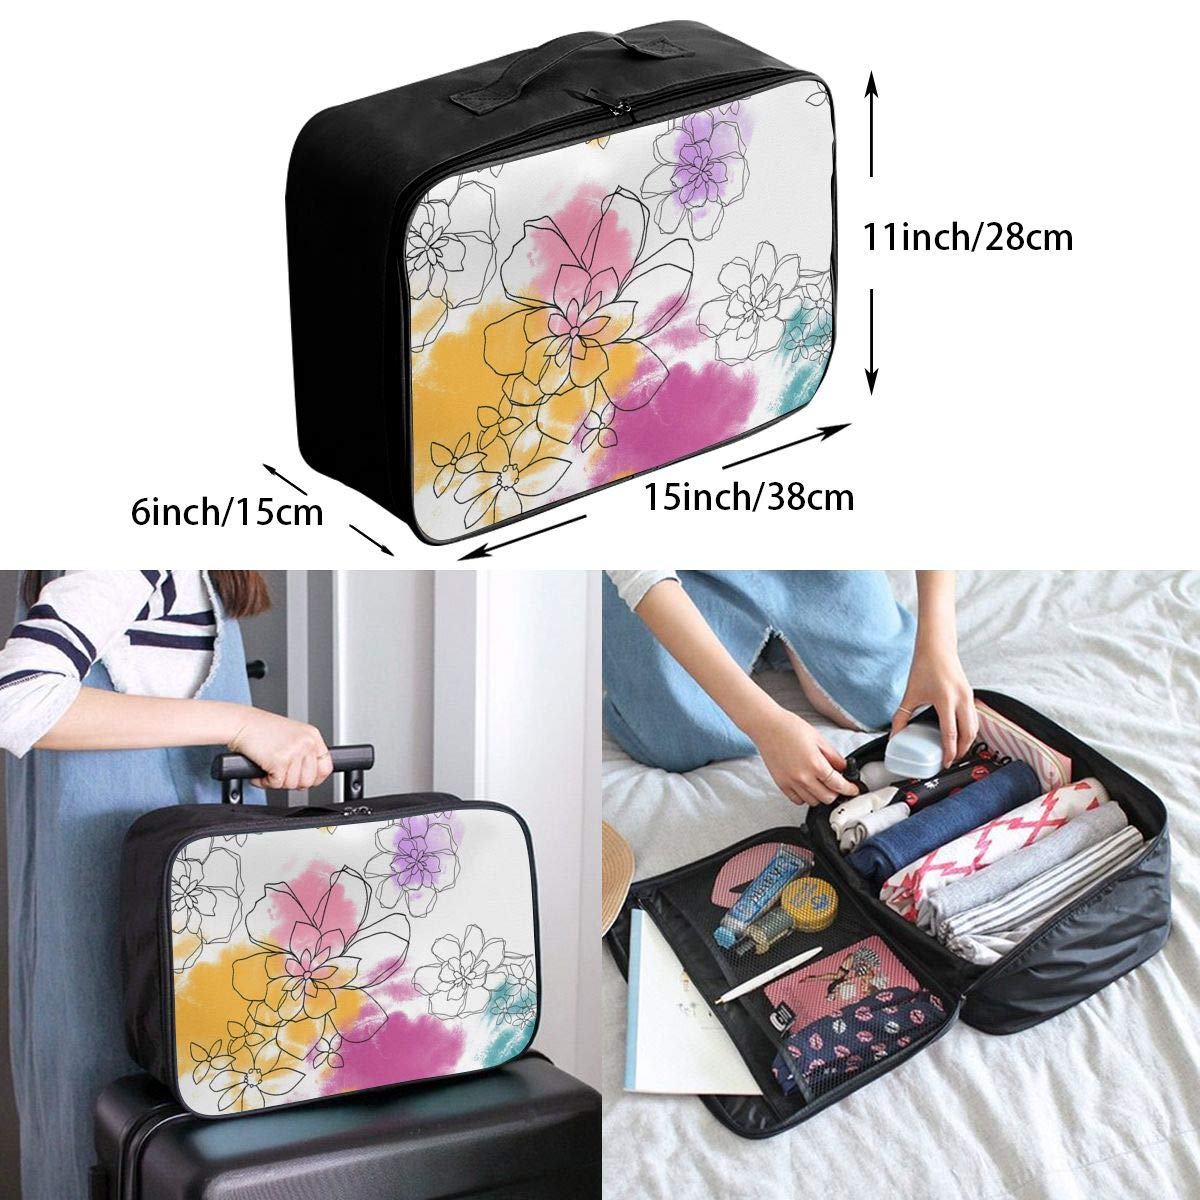 Travel Luggage Duffle Bag Lightweight Portable Handbag Colorful Floral Pattern Large Capacity Waterproof Foldable Storage Tote